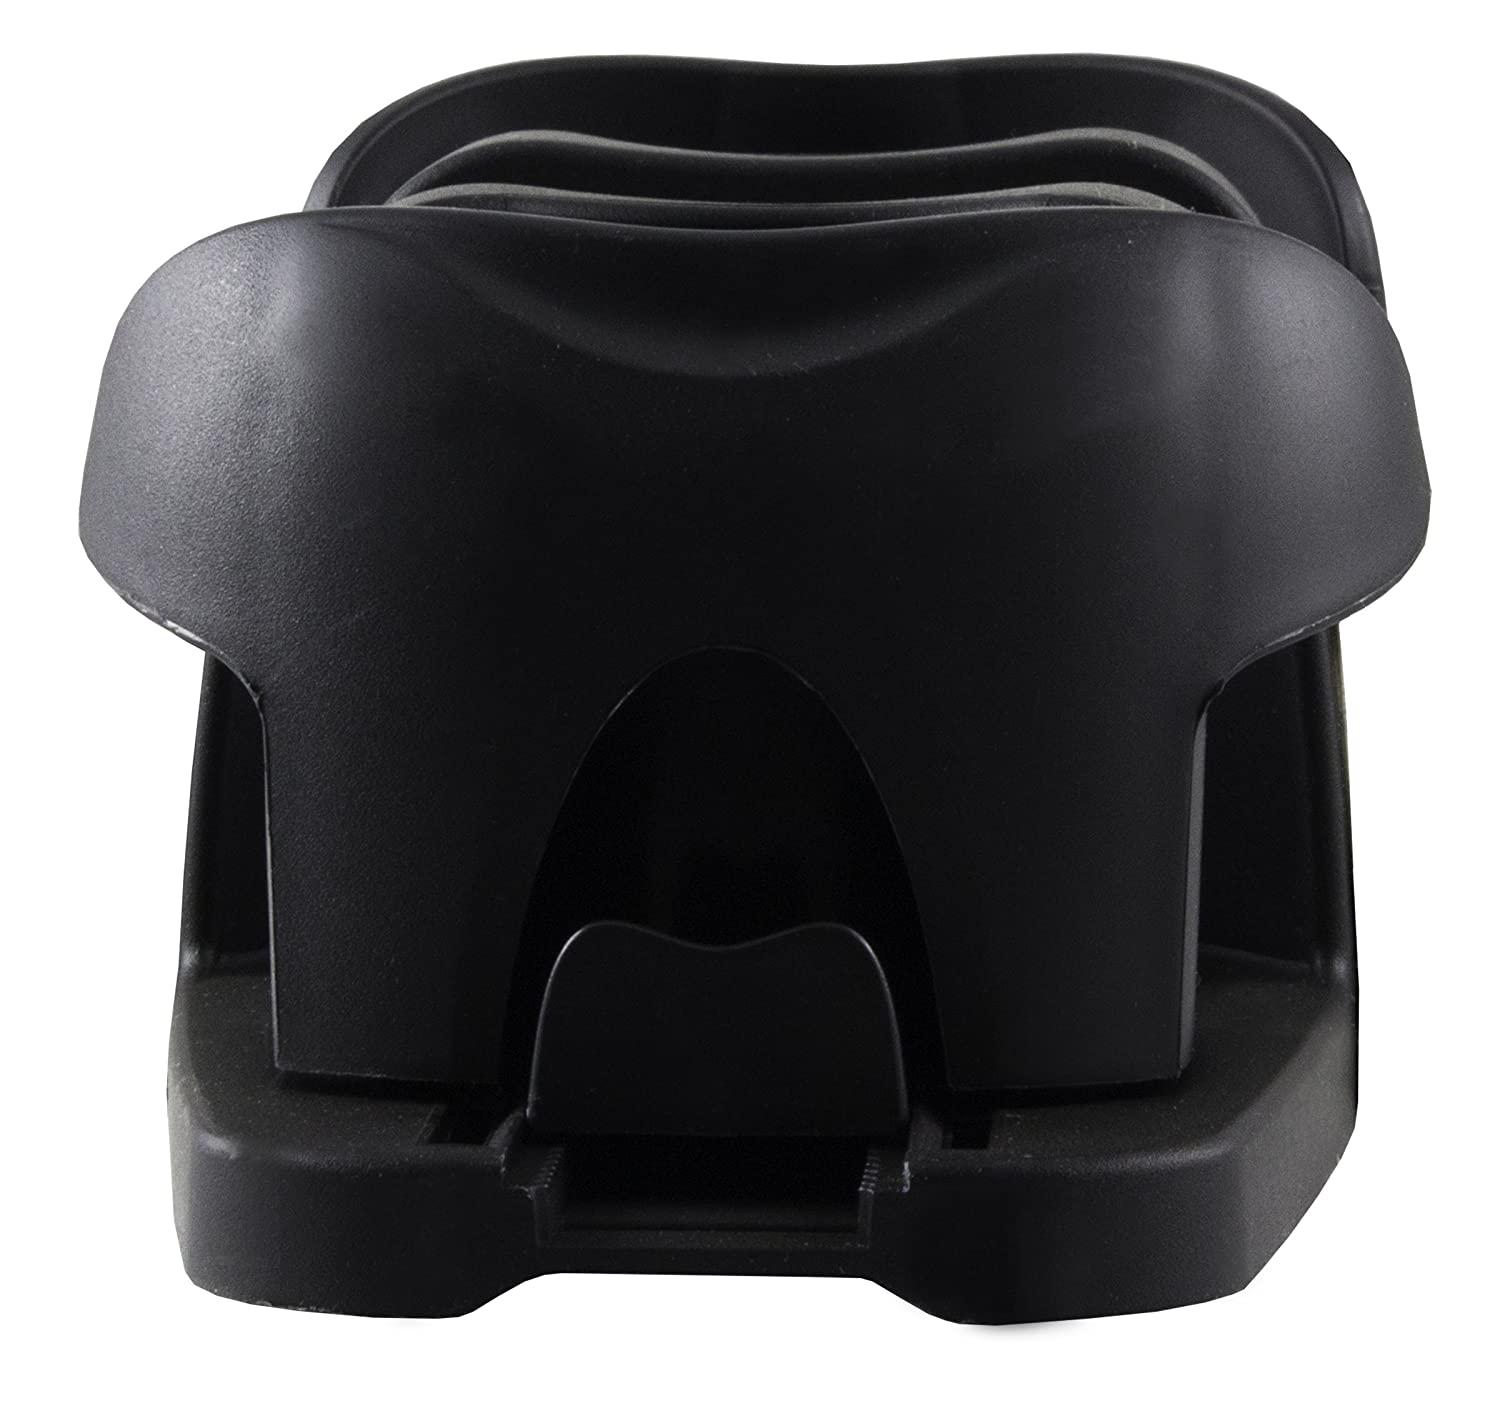 2002 2007 Compatible with Toyota Highlander Custom Fit Cup Holder Insert Dual Drink Cupholder